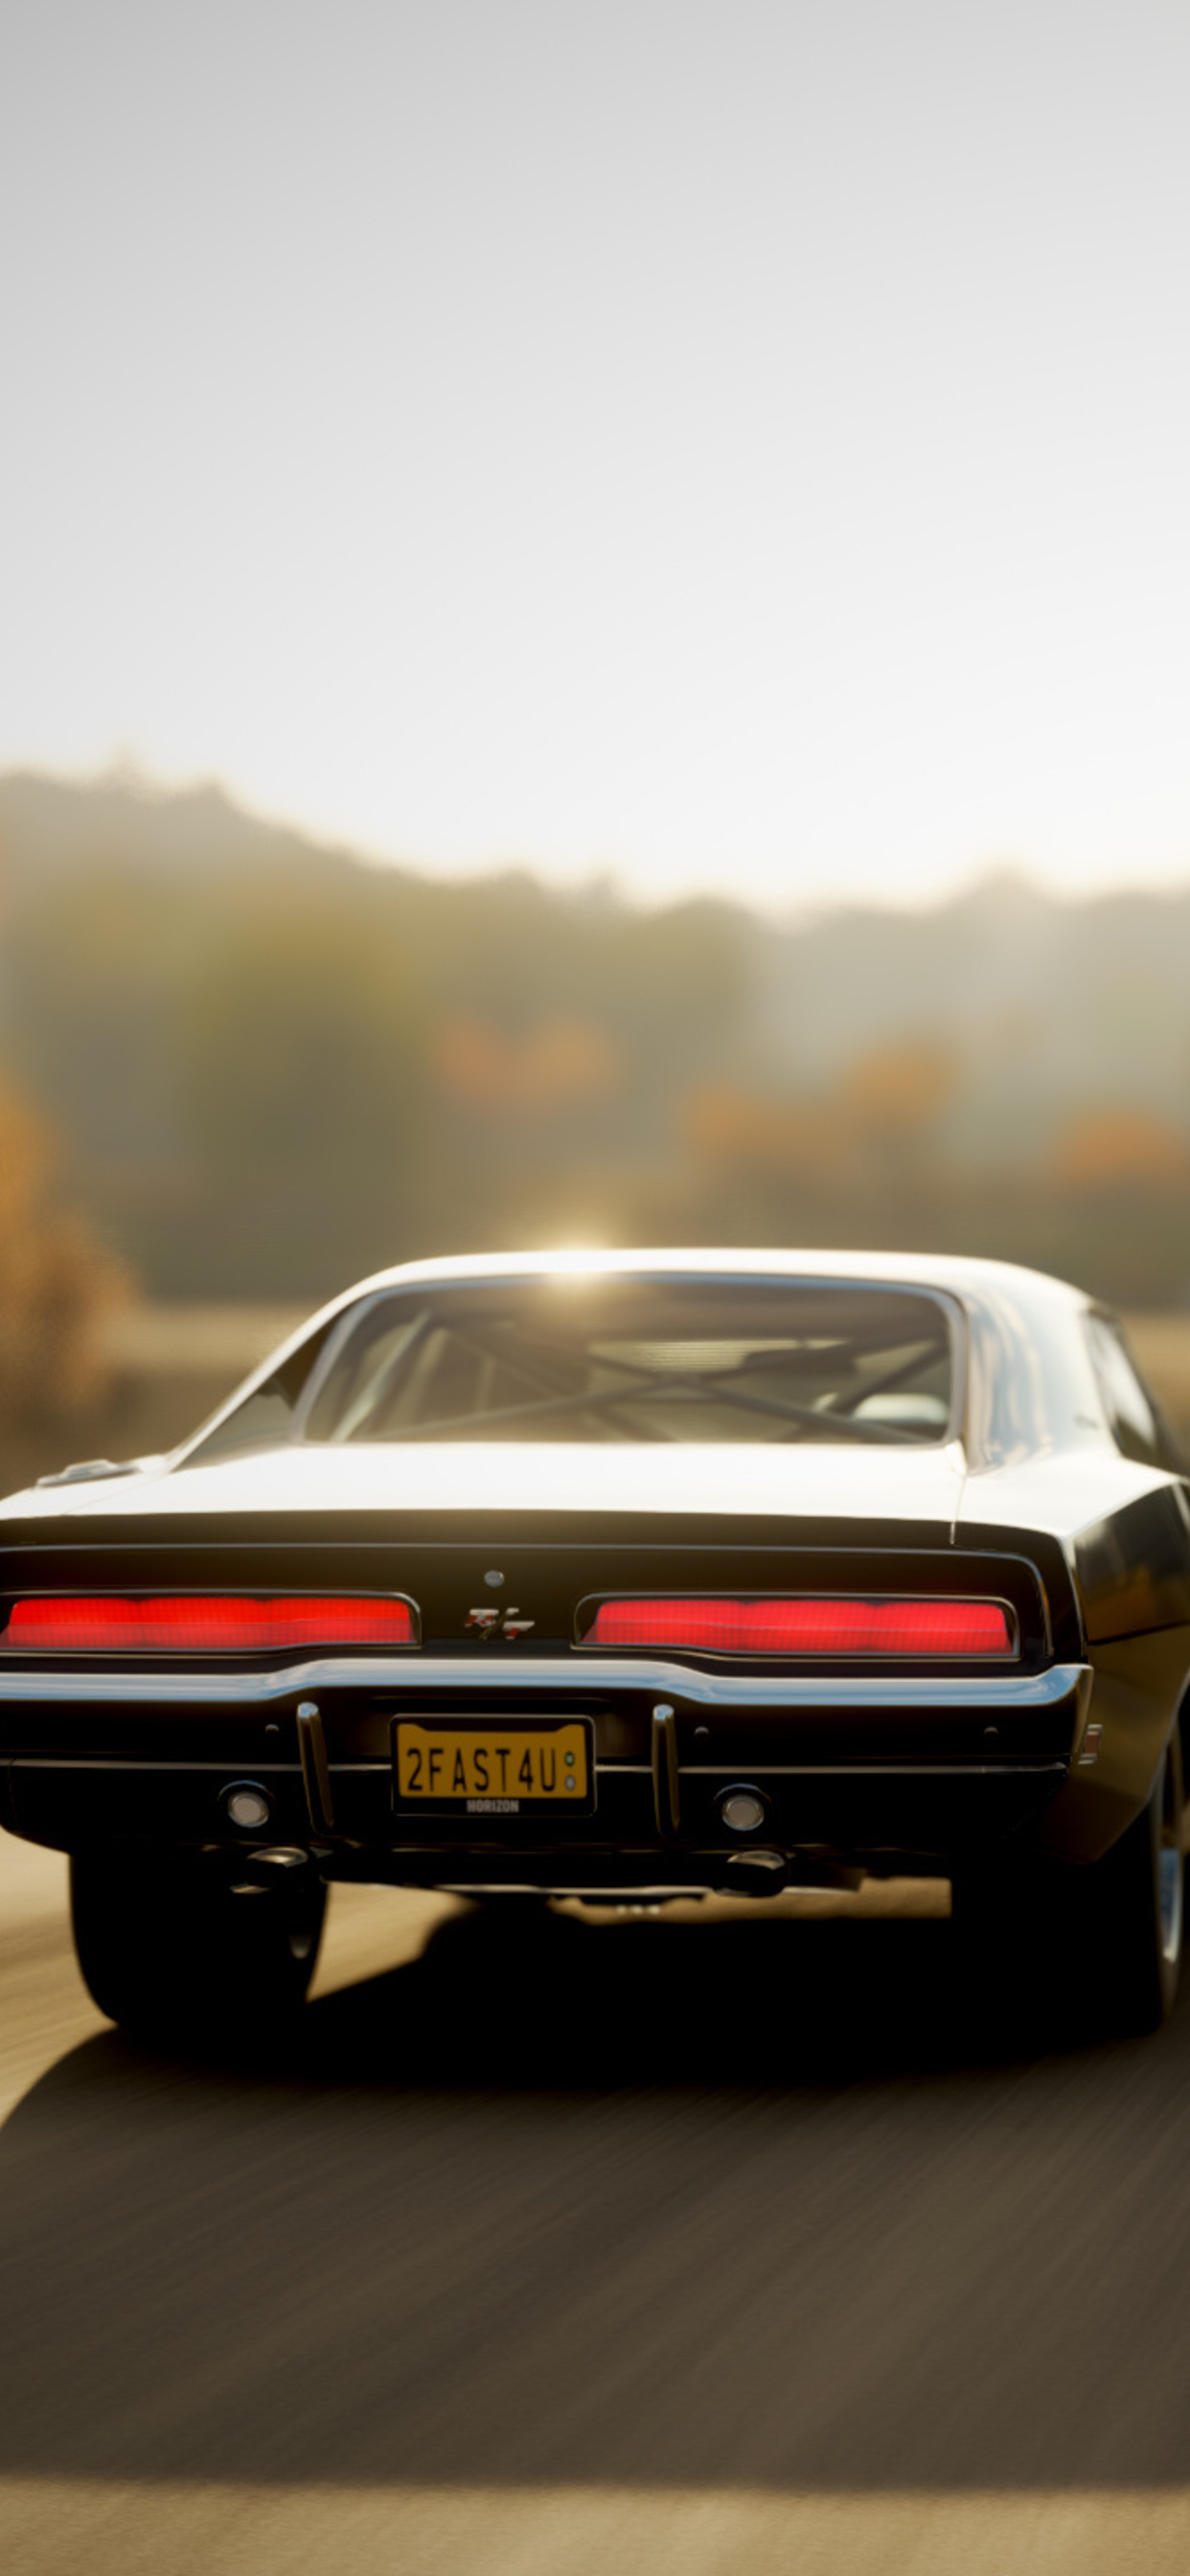 1242x2688 forza horizon 4 dodge iphone xs max hd 4k wallpapers images backgrounds photos and - Forza logo wallpaper ...